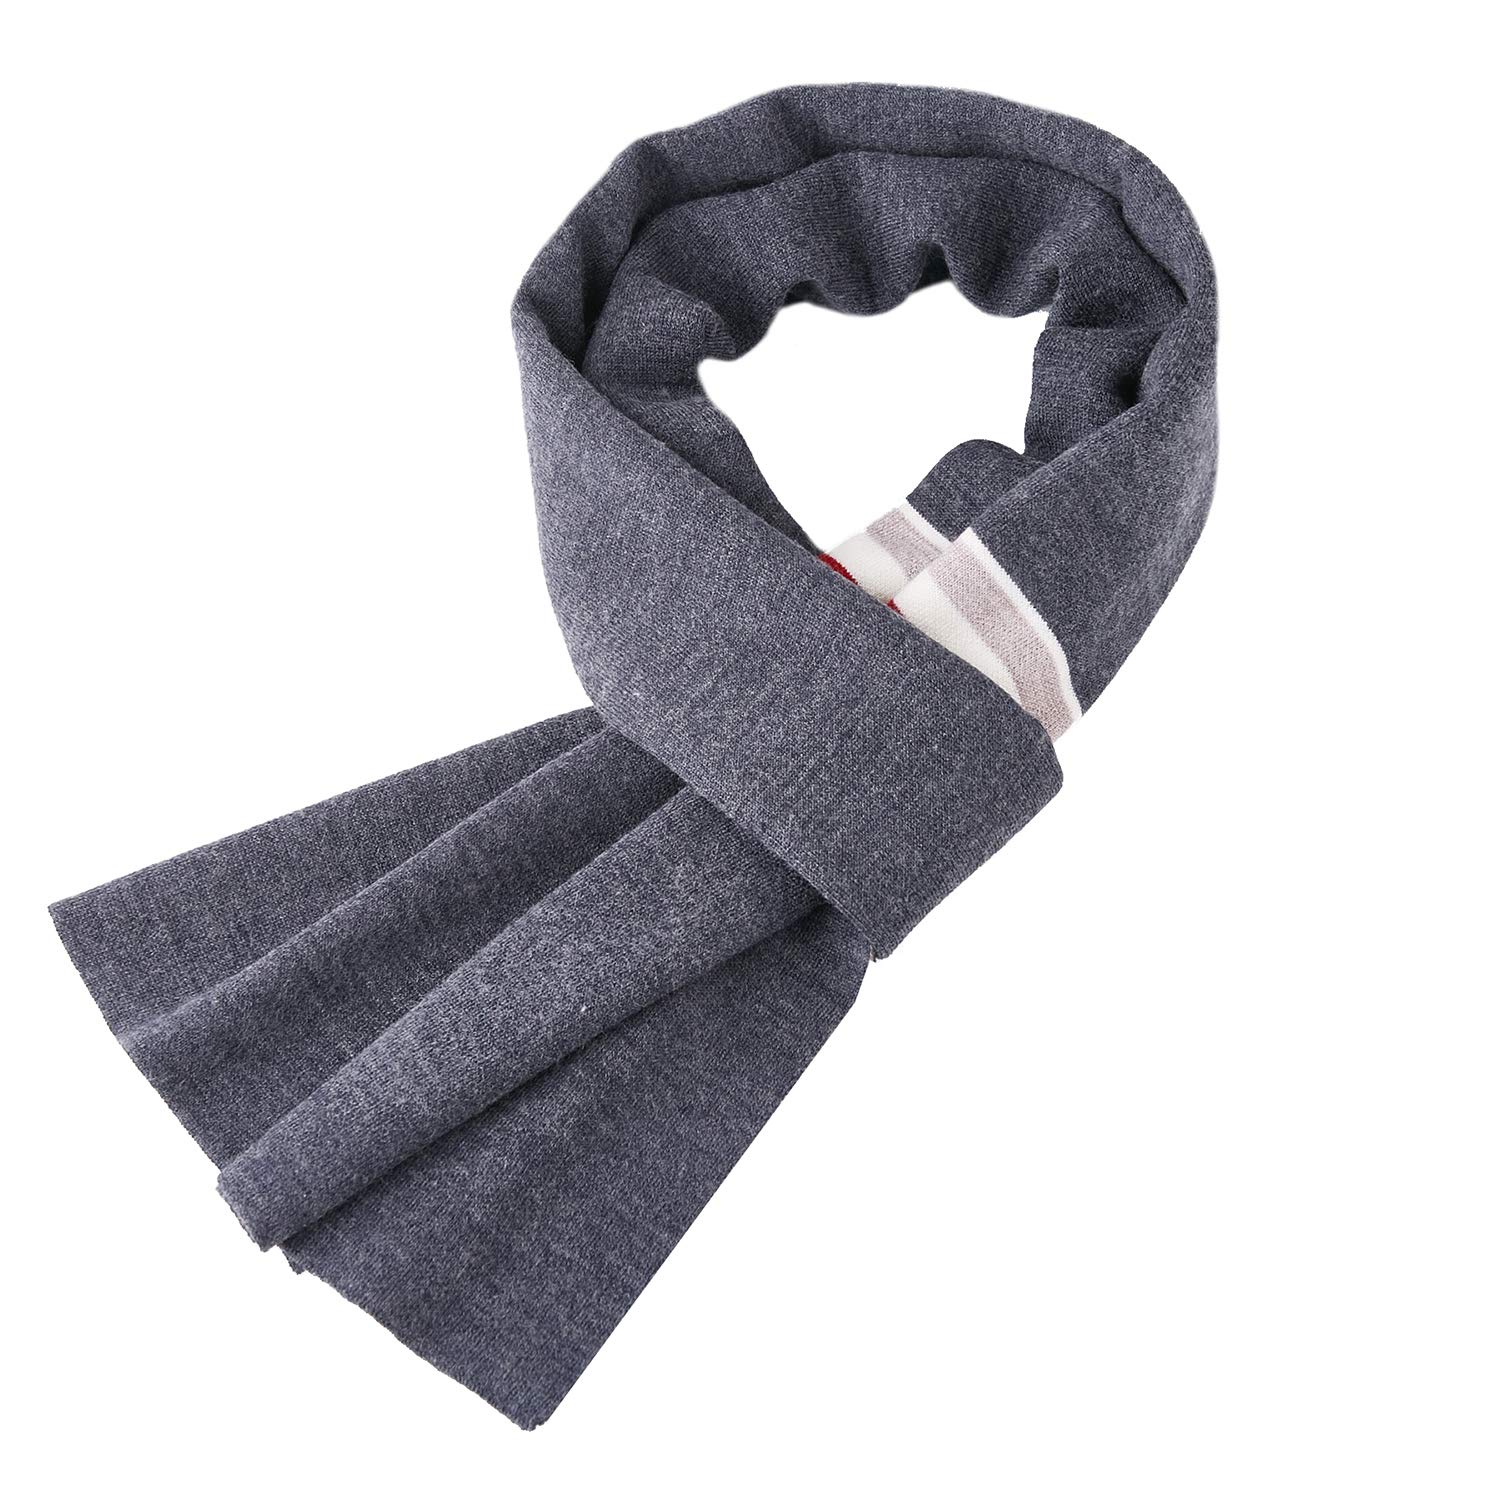 Taylormia Men's Cashmere Scarf - Warm Soft Thick Wool Scarves for Fall & Winter Khaki